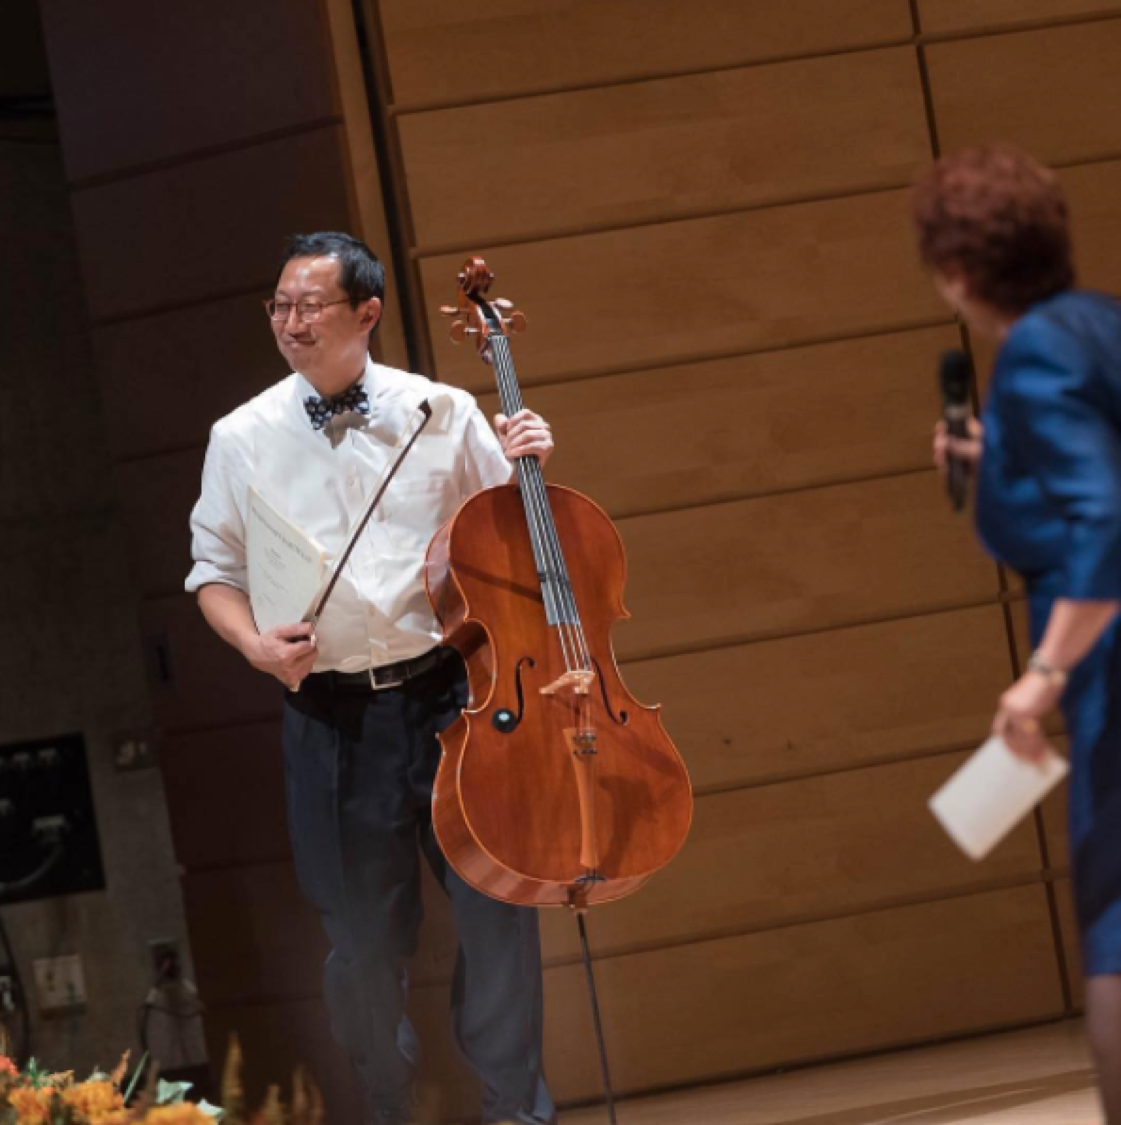 Repost from @universityofbc: @ubcprez took the stage to perform with his cello last night at a concert to celebrate his formal Installation as #UBC's 15th President and Vice-Chancellor. #UBCTuumEst